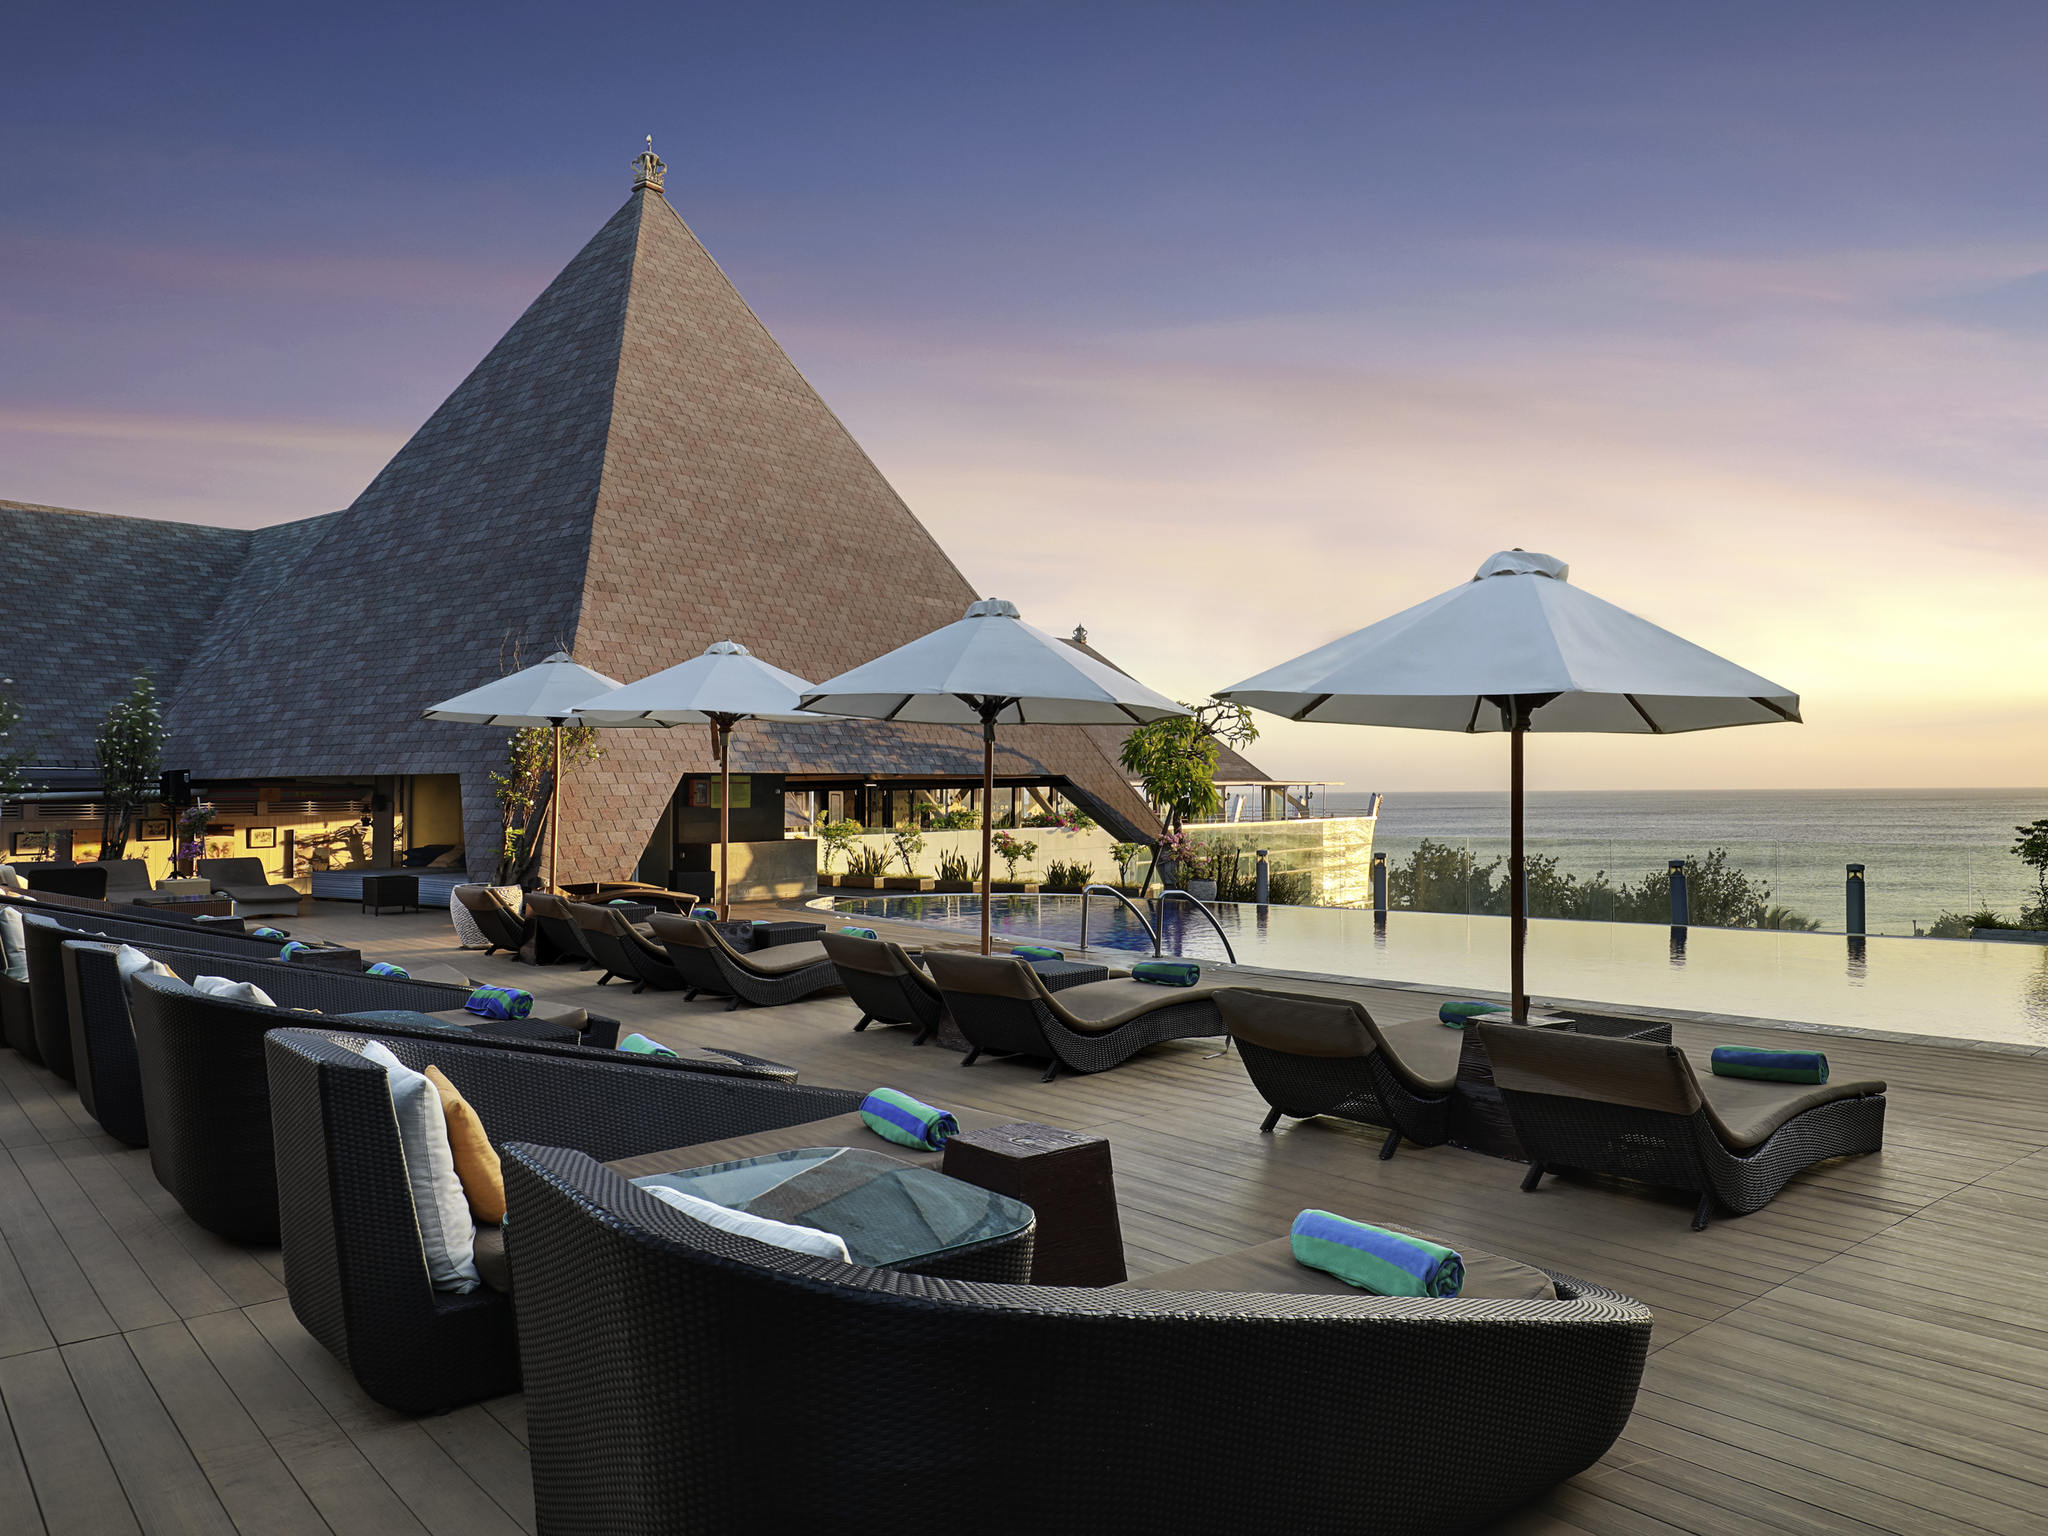 Hotel - The Kuta Beach Heritage Hotel Bali - Managed by AccorHotels